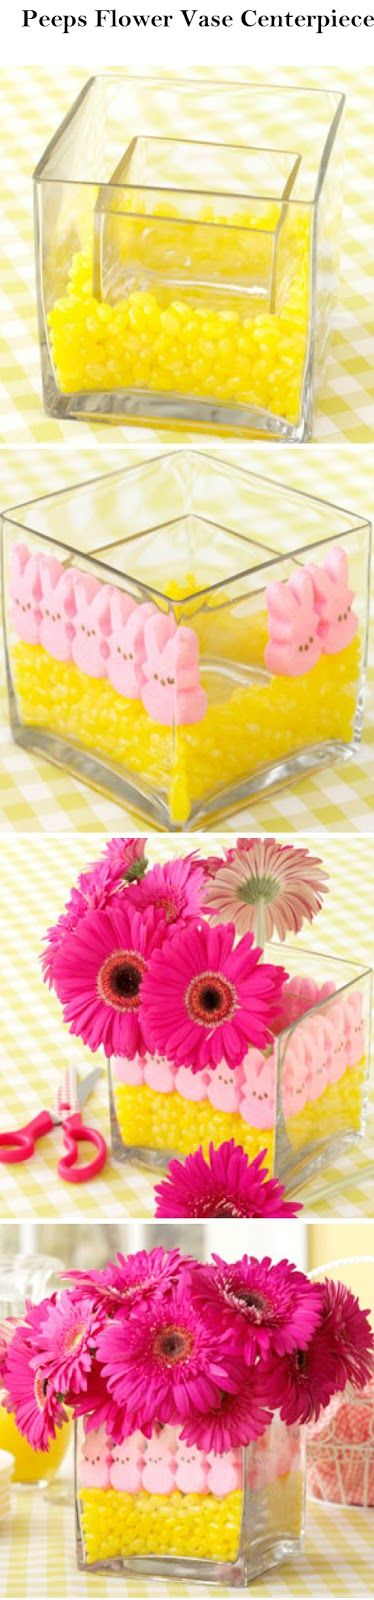 Crafts and DIY Community: Peeps Flower Vase Centerpiece | Crafts and DIY Community